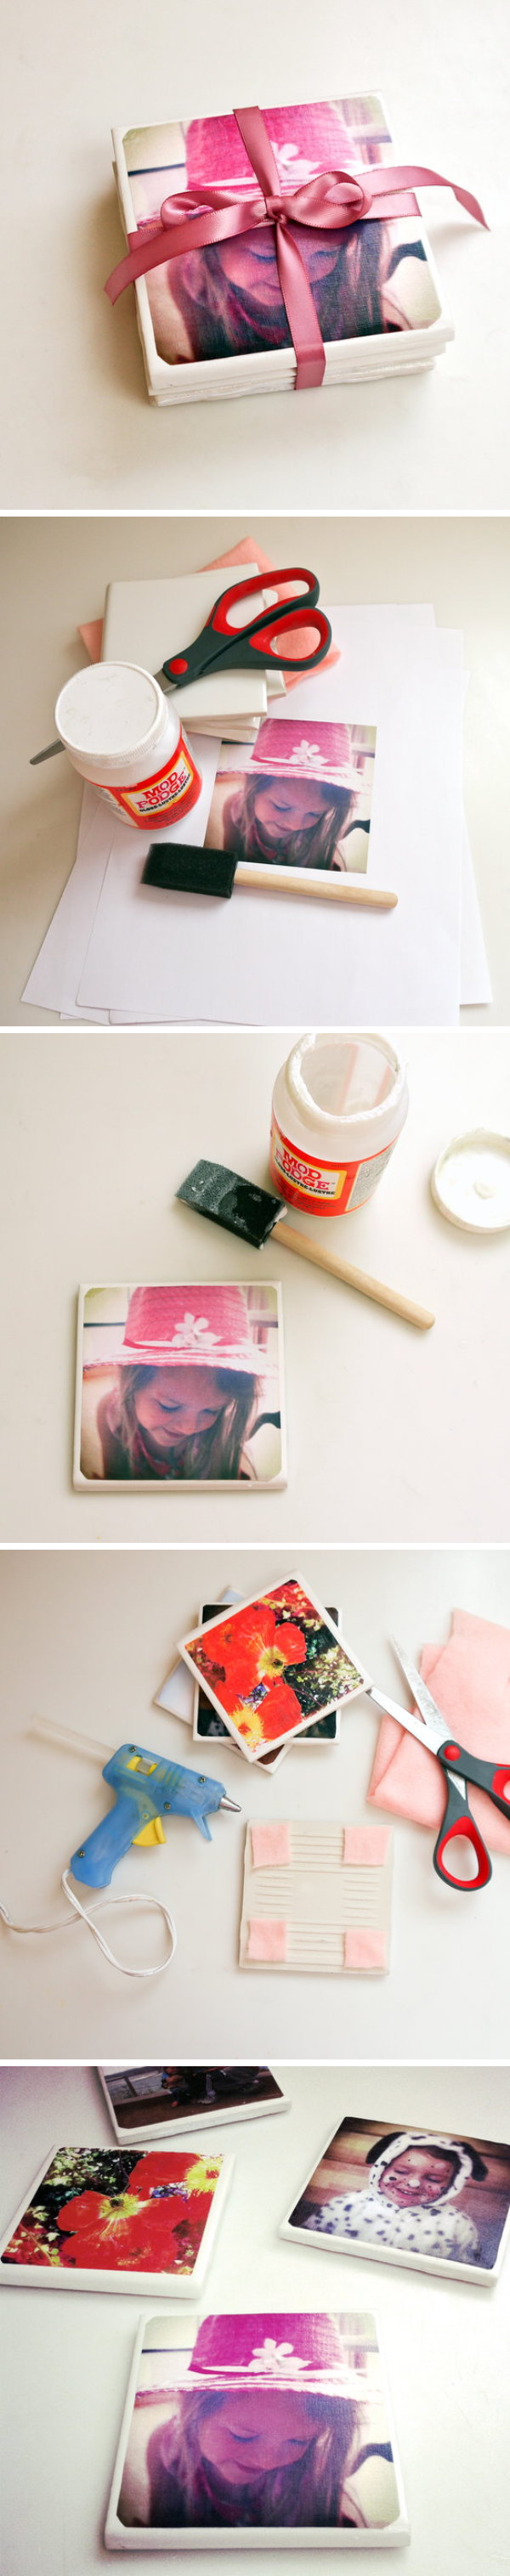 DIY Tile Photo Coasters.